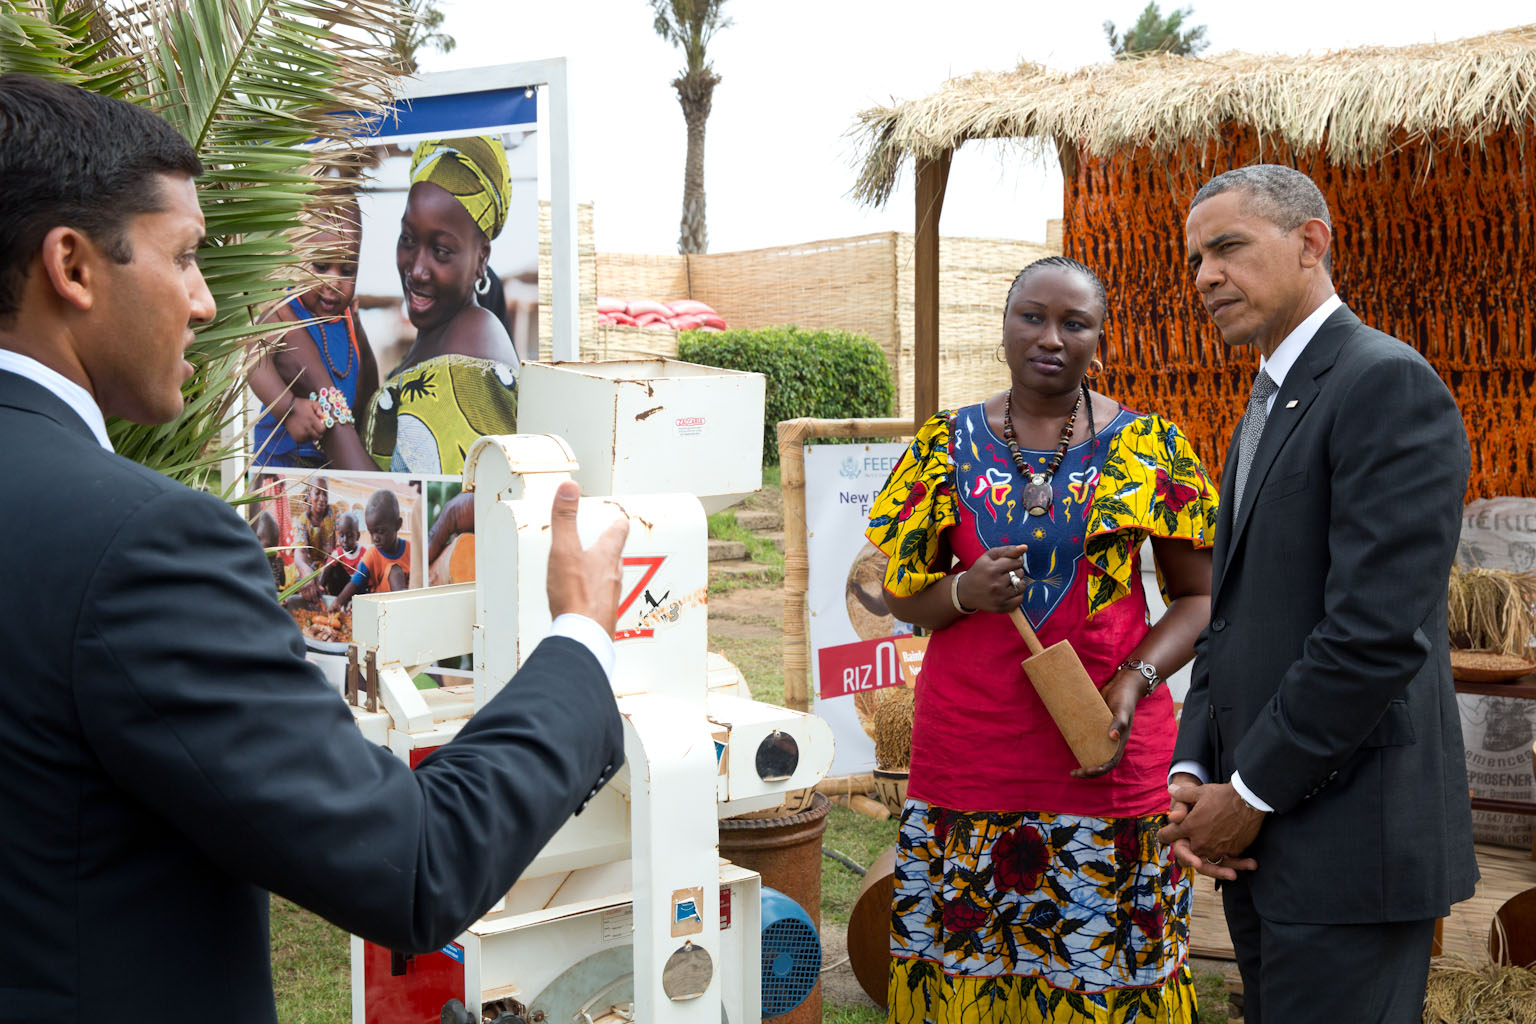 President Barack Obama and USAID Administrator Raj Shah attend a Feed the Future Technology Marketplace